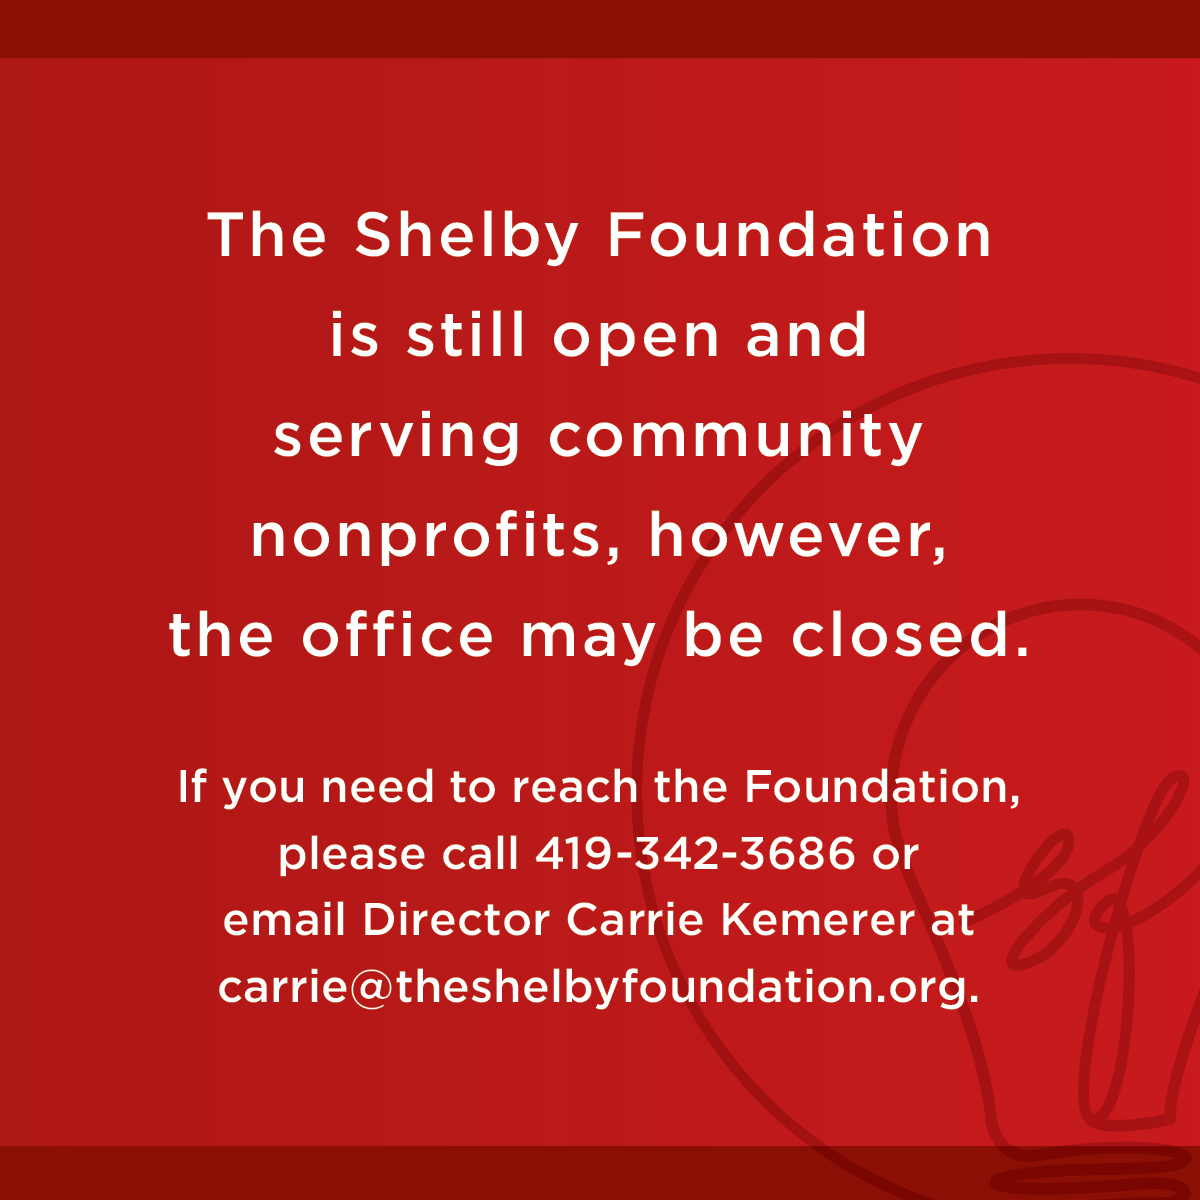 Special Announcement from The Shelby Foundation